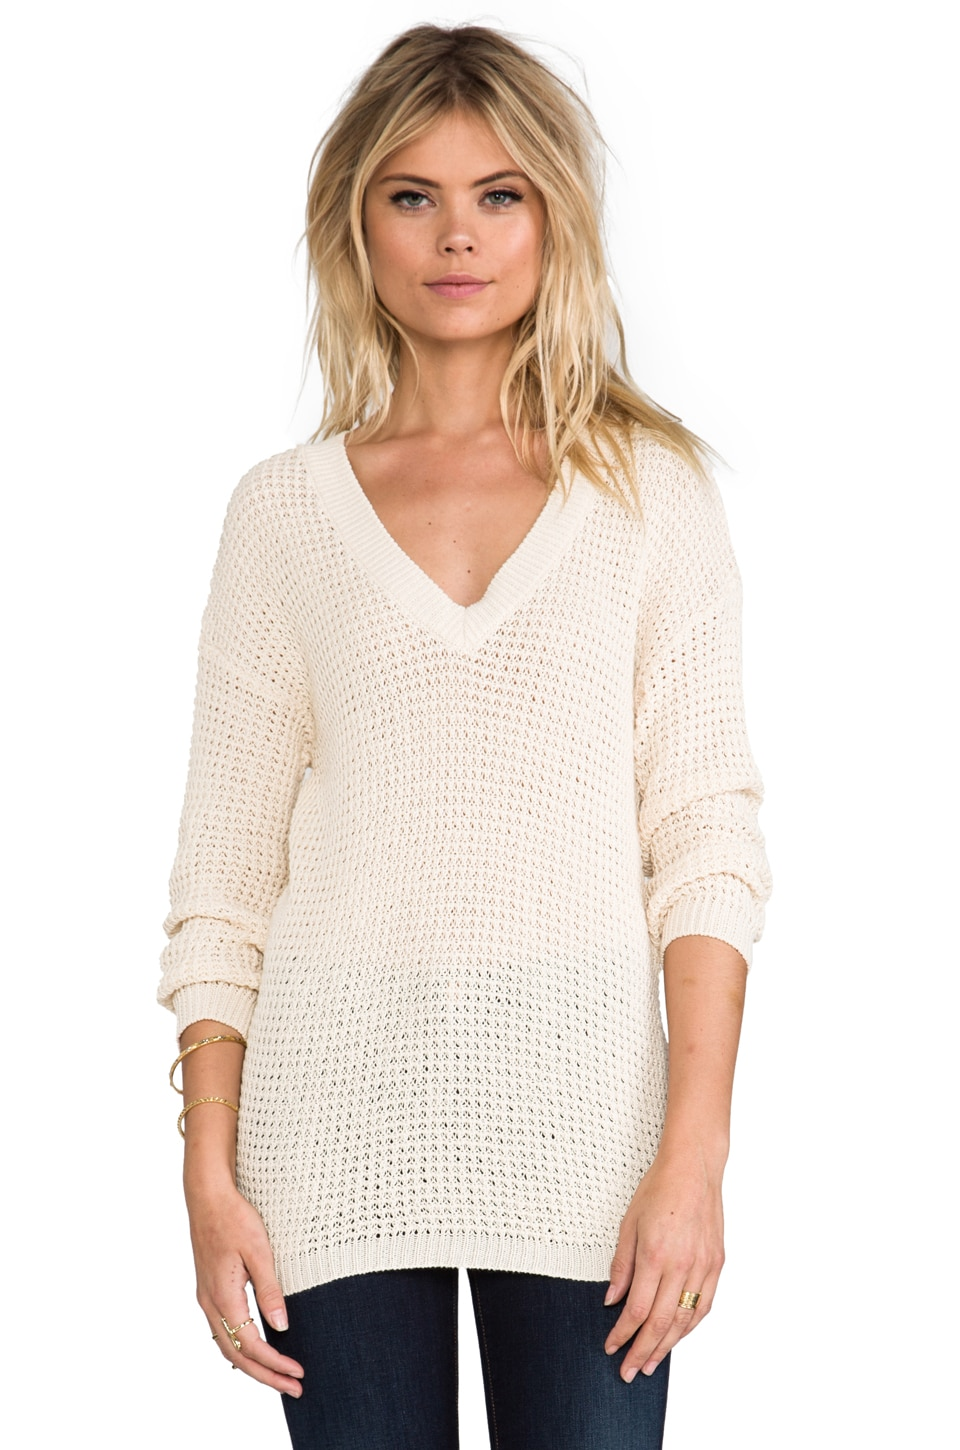 ANINE BING Knit Sweater in Beige